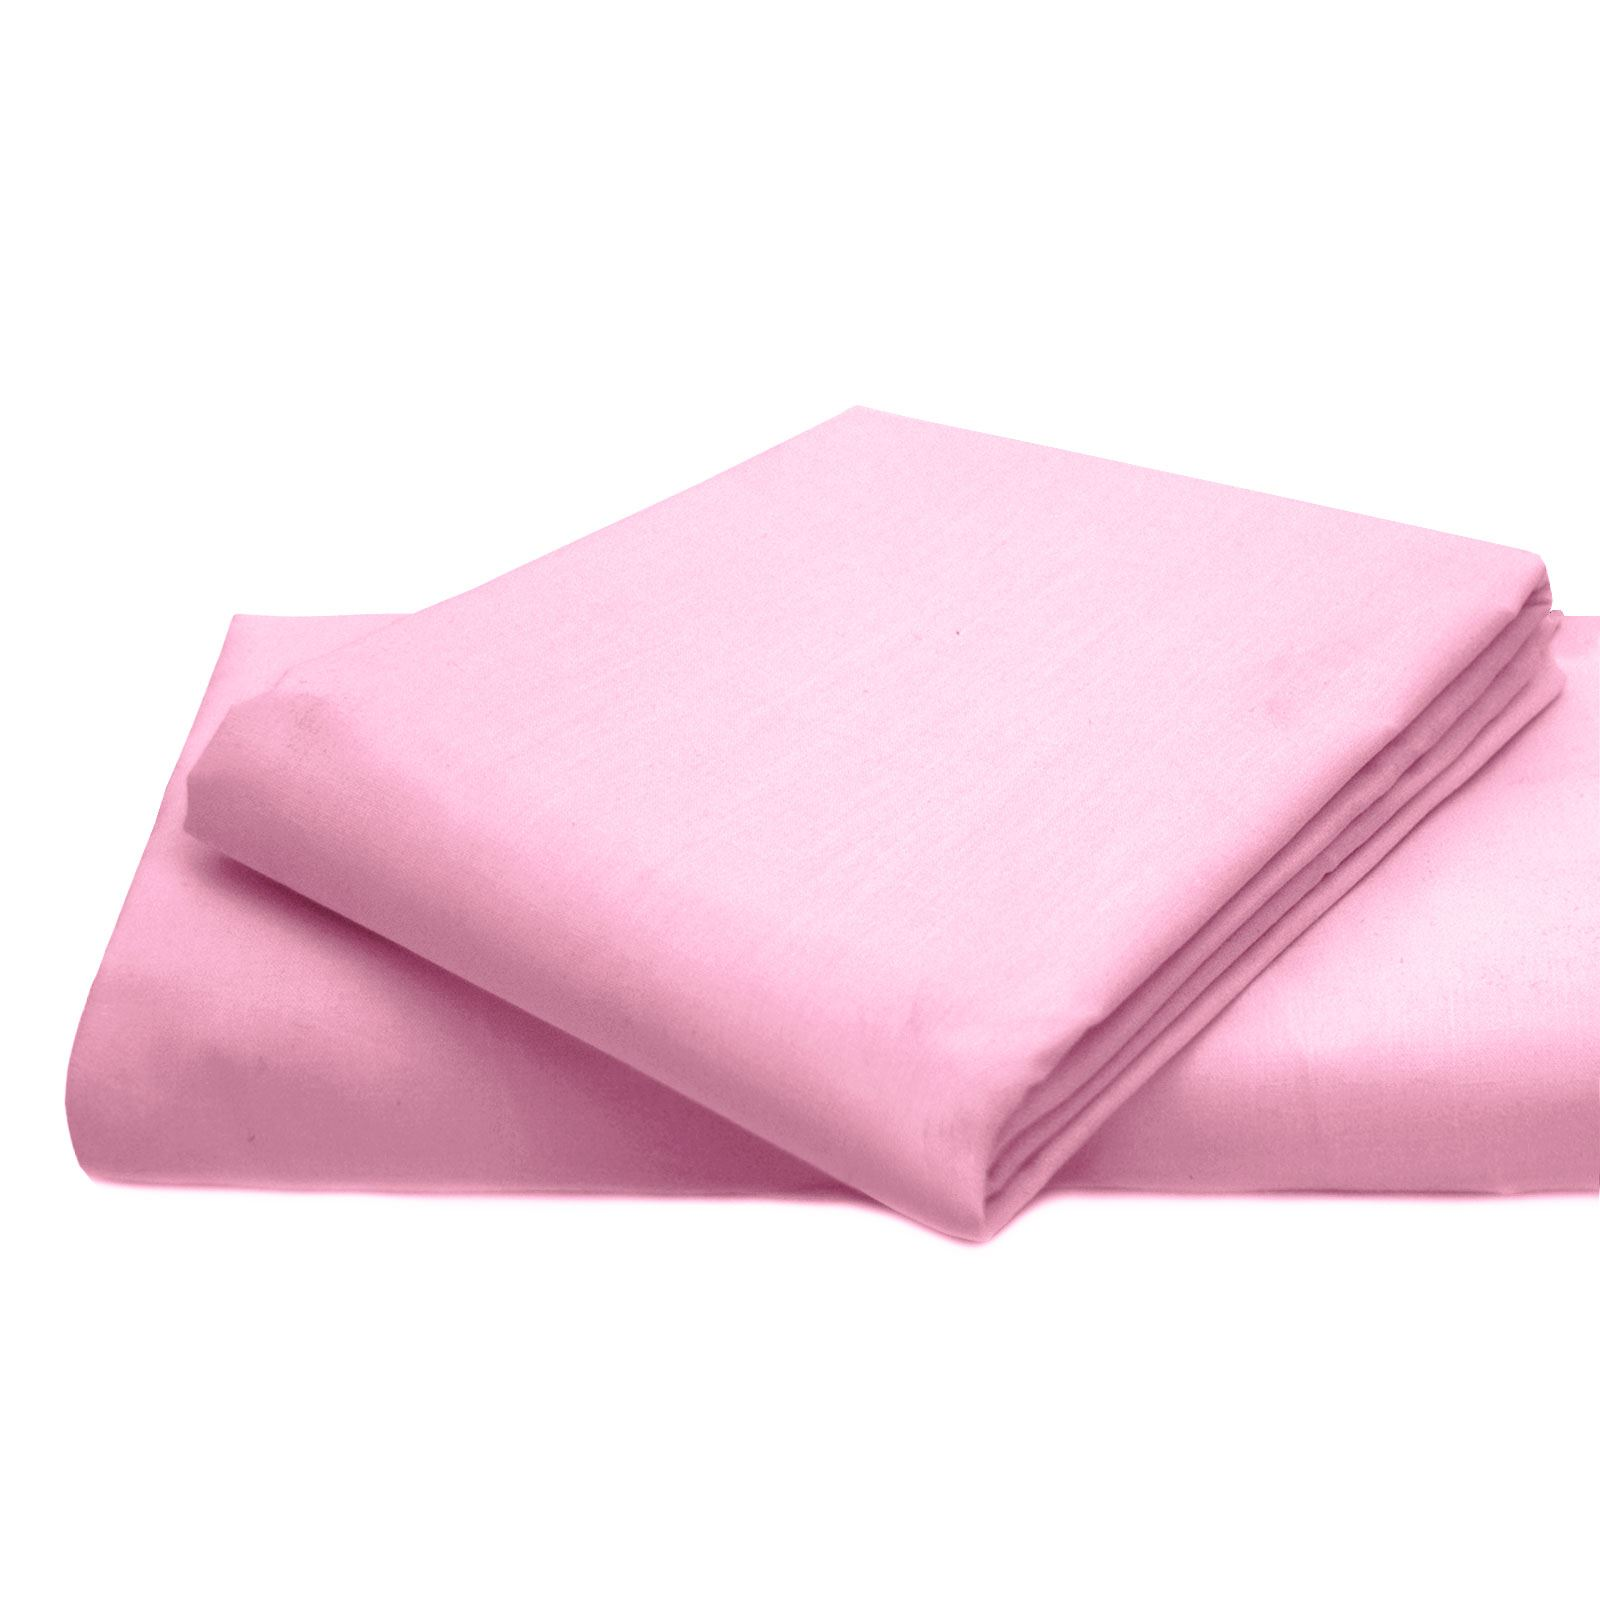 Luxury Valance Bed Sheets Dyed Poly Cotton Platform Base